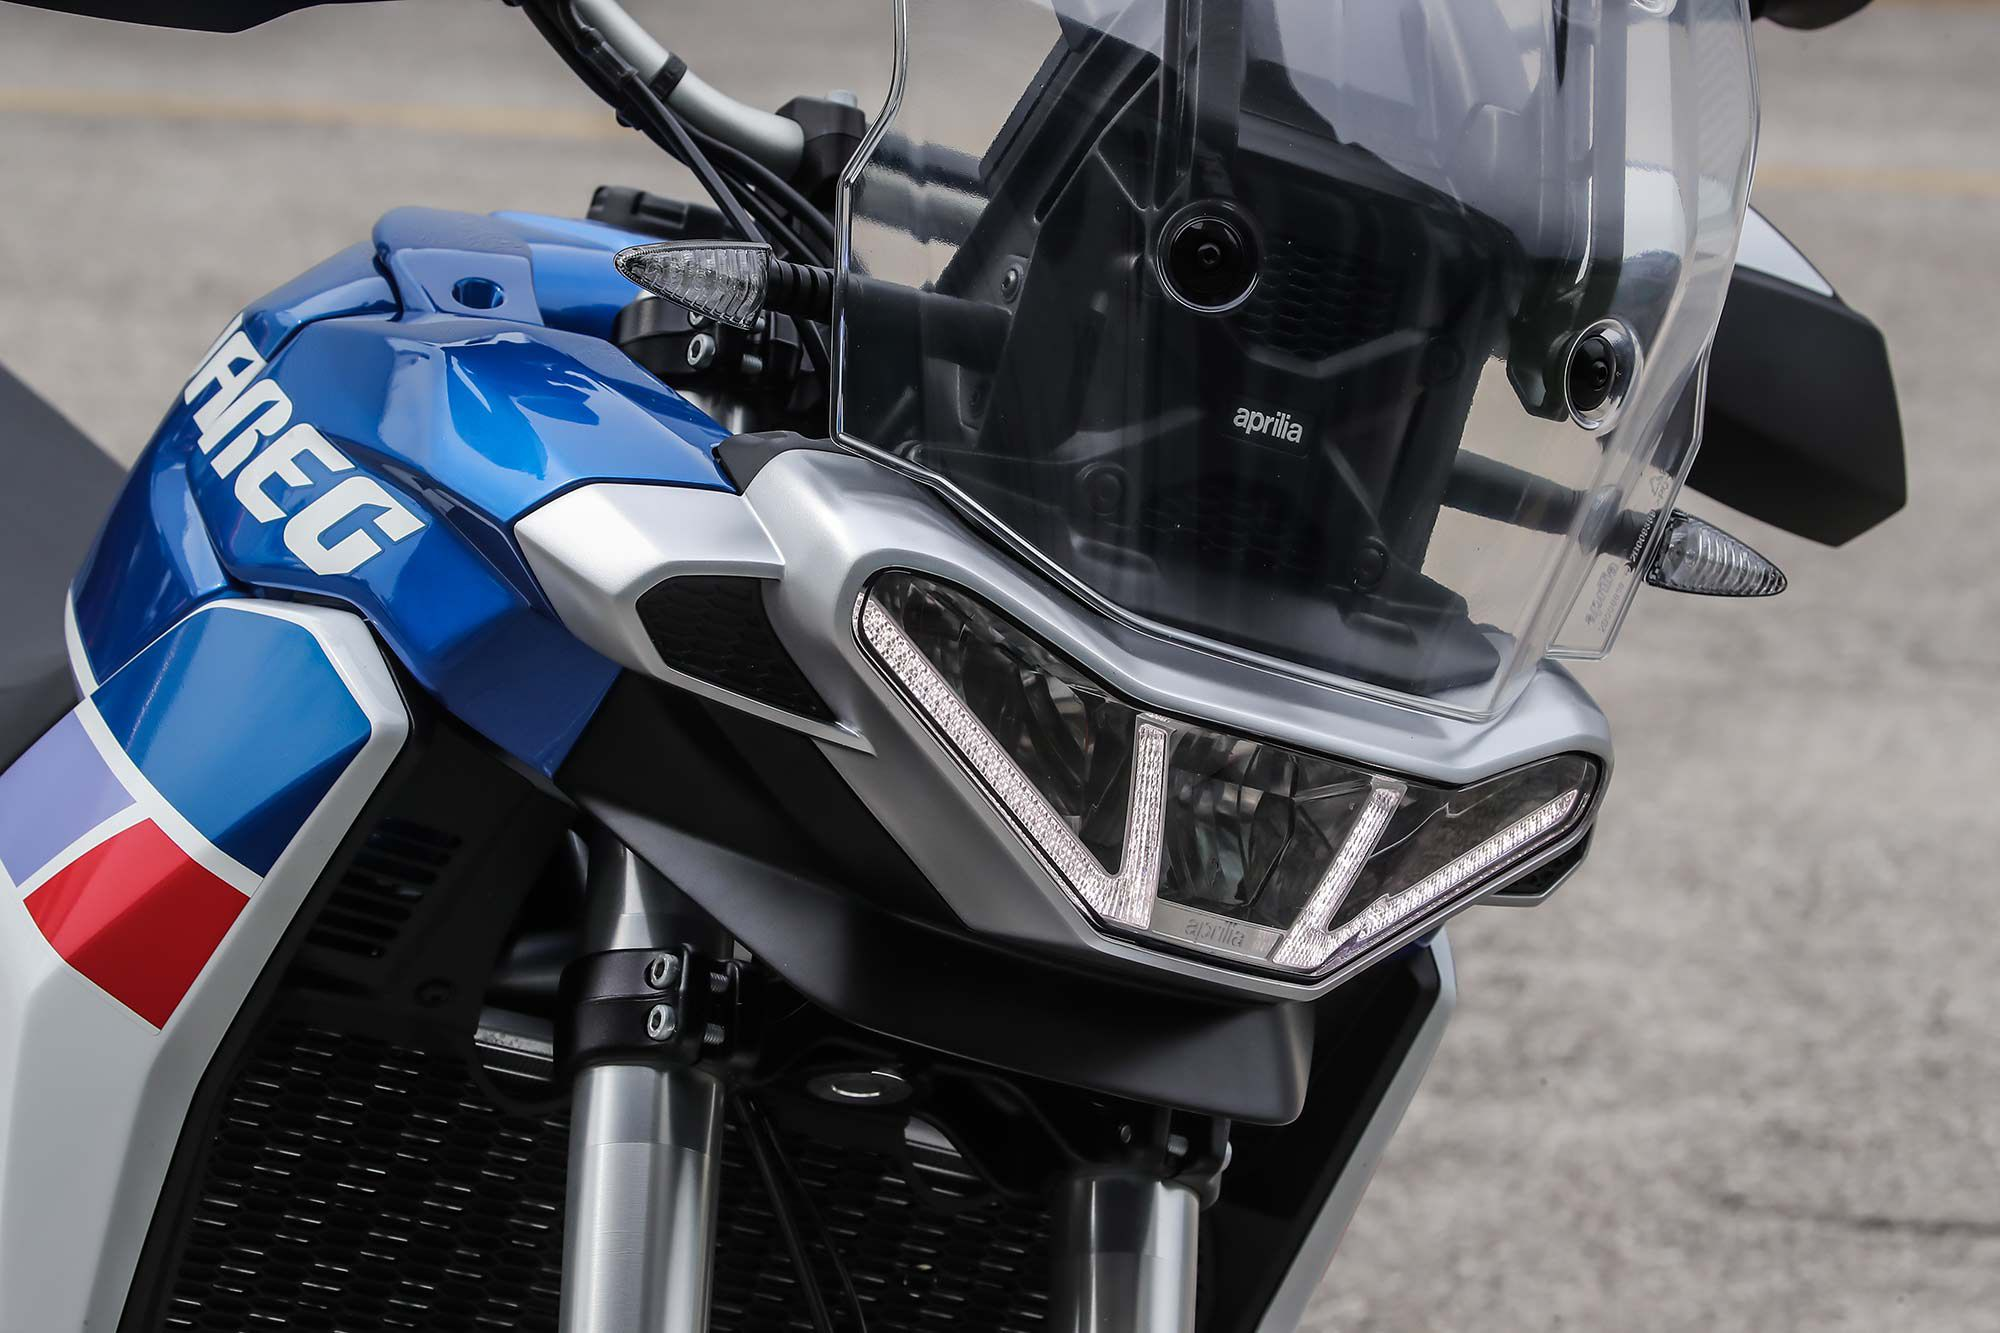 LED daytime running lights surround the three LED headlights at the front of the Tuareg.